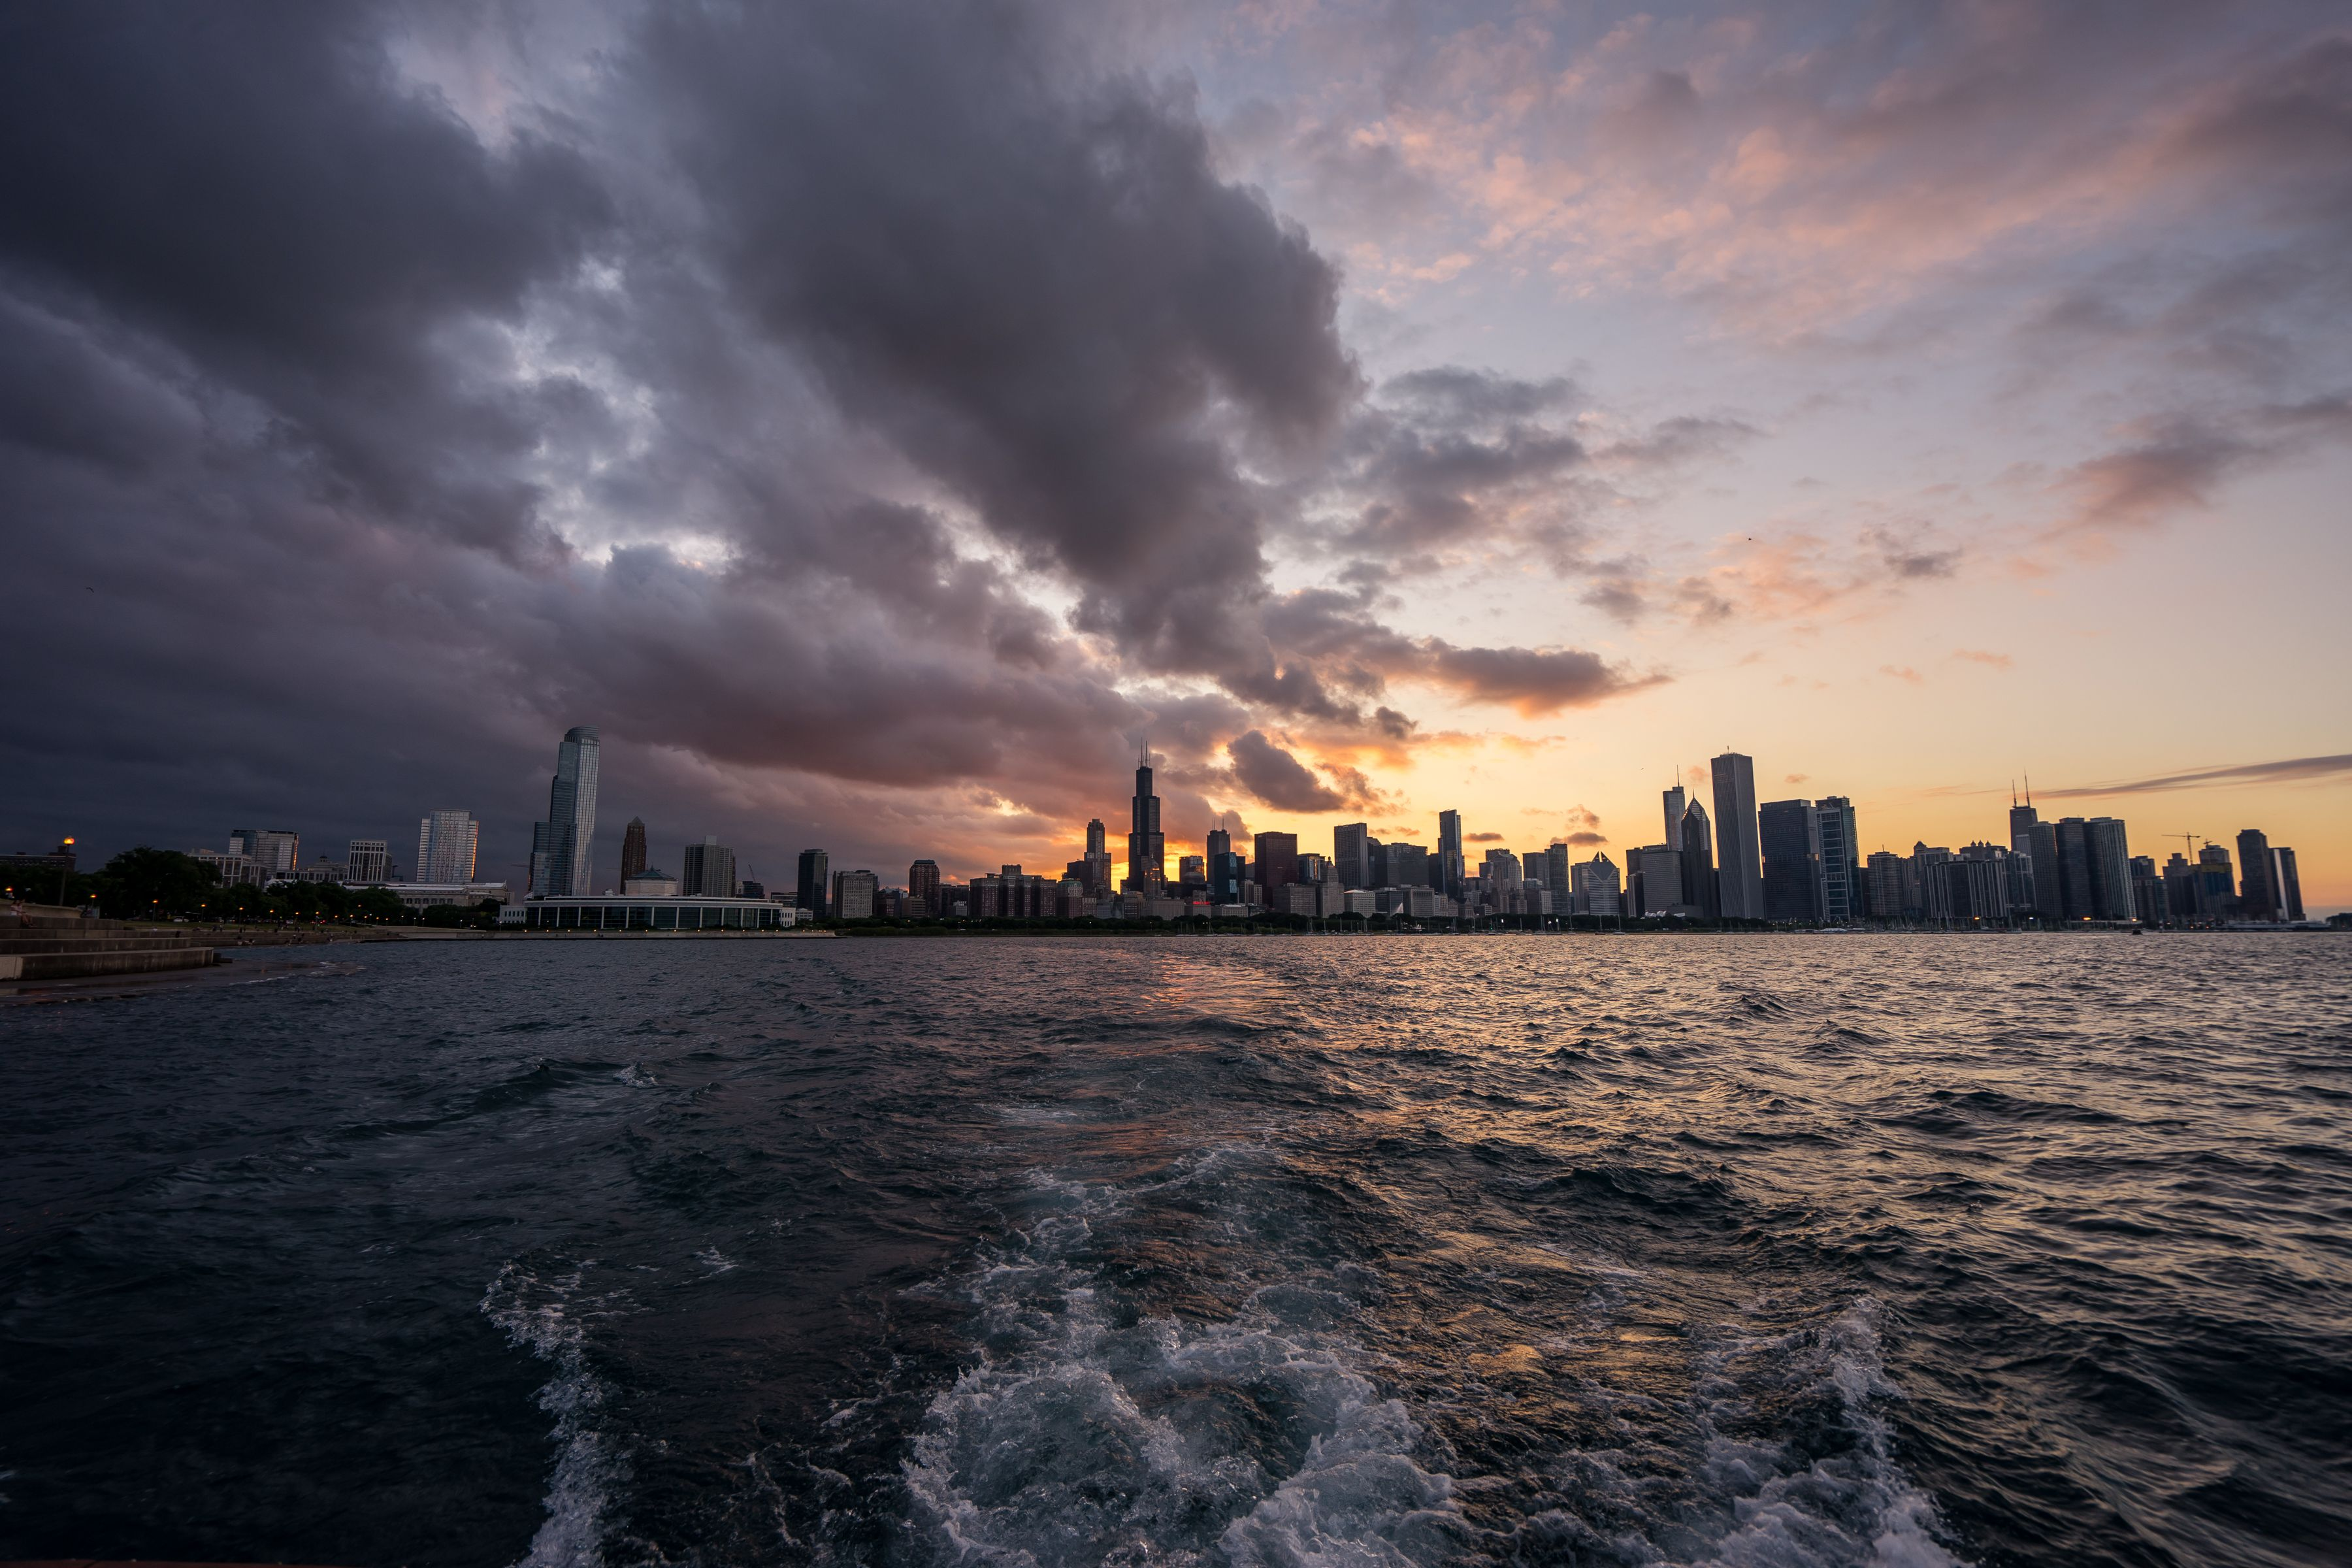 Tatyana Perreault captures the ever-changing Chicago skyline in her photography